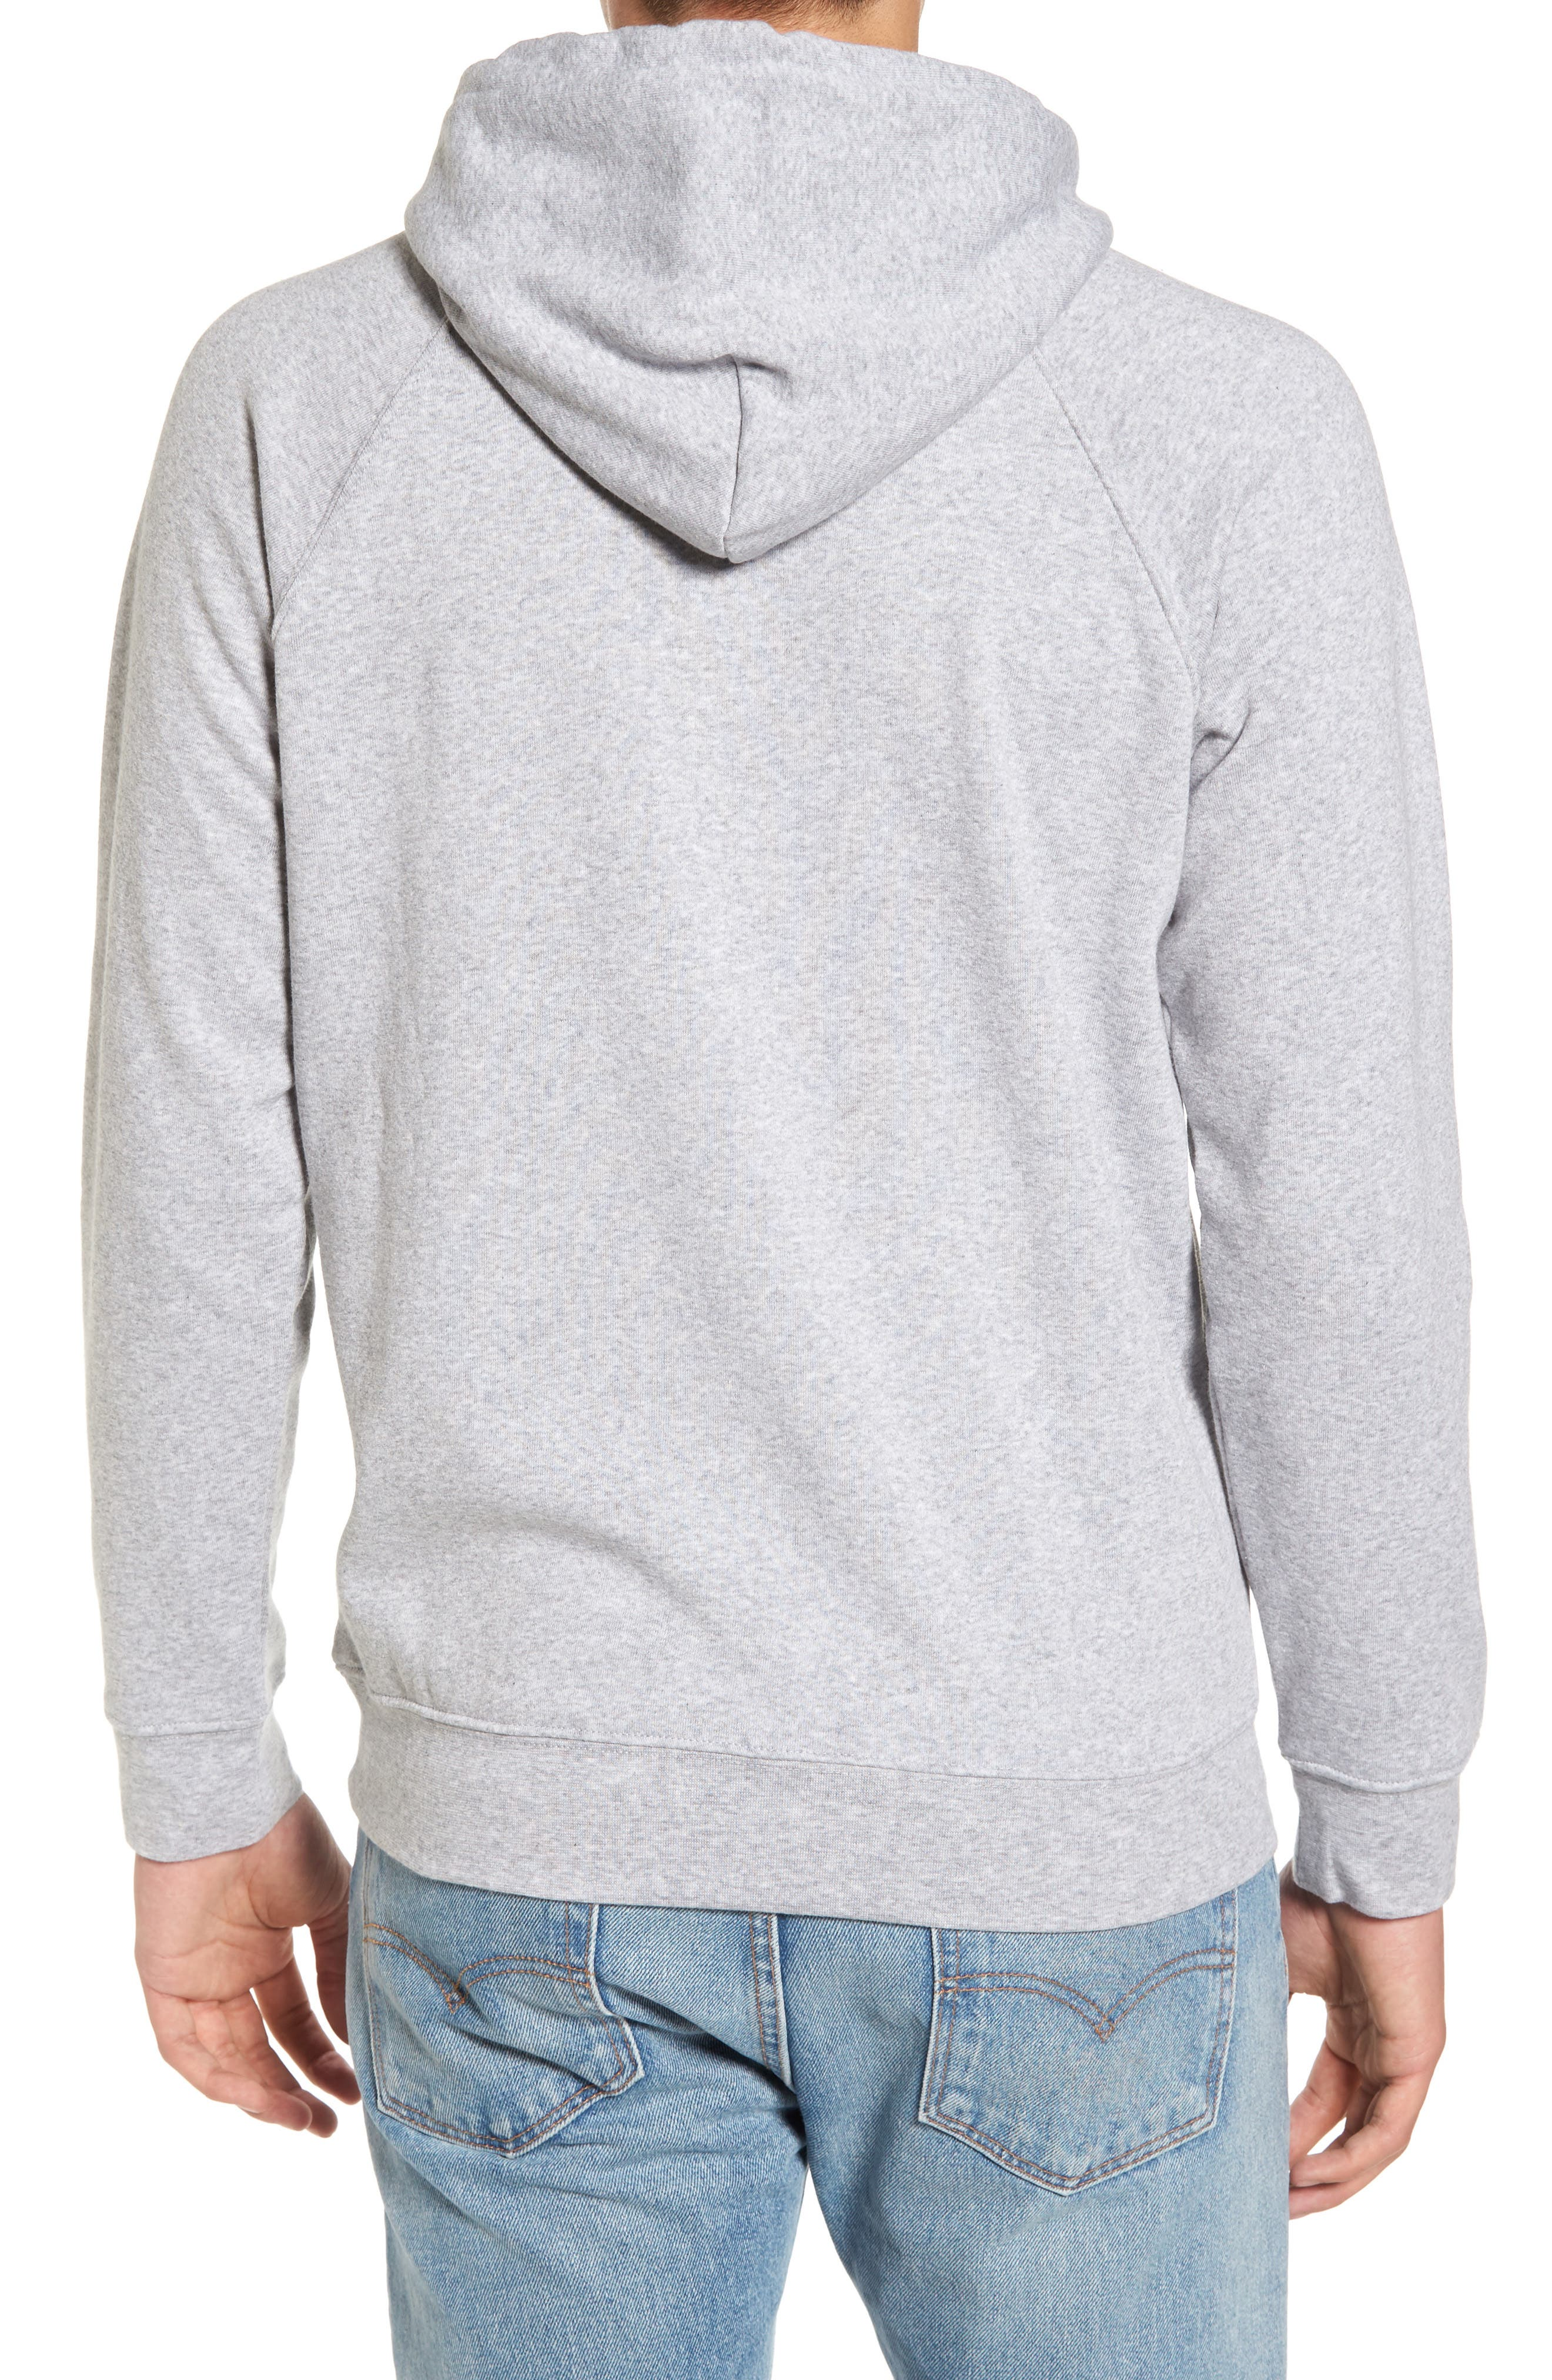 Lofty Creature Comforts Hoodie,                             Alternate thumbnail 2, color,                             061